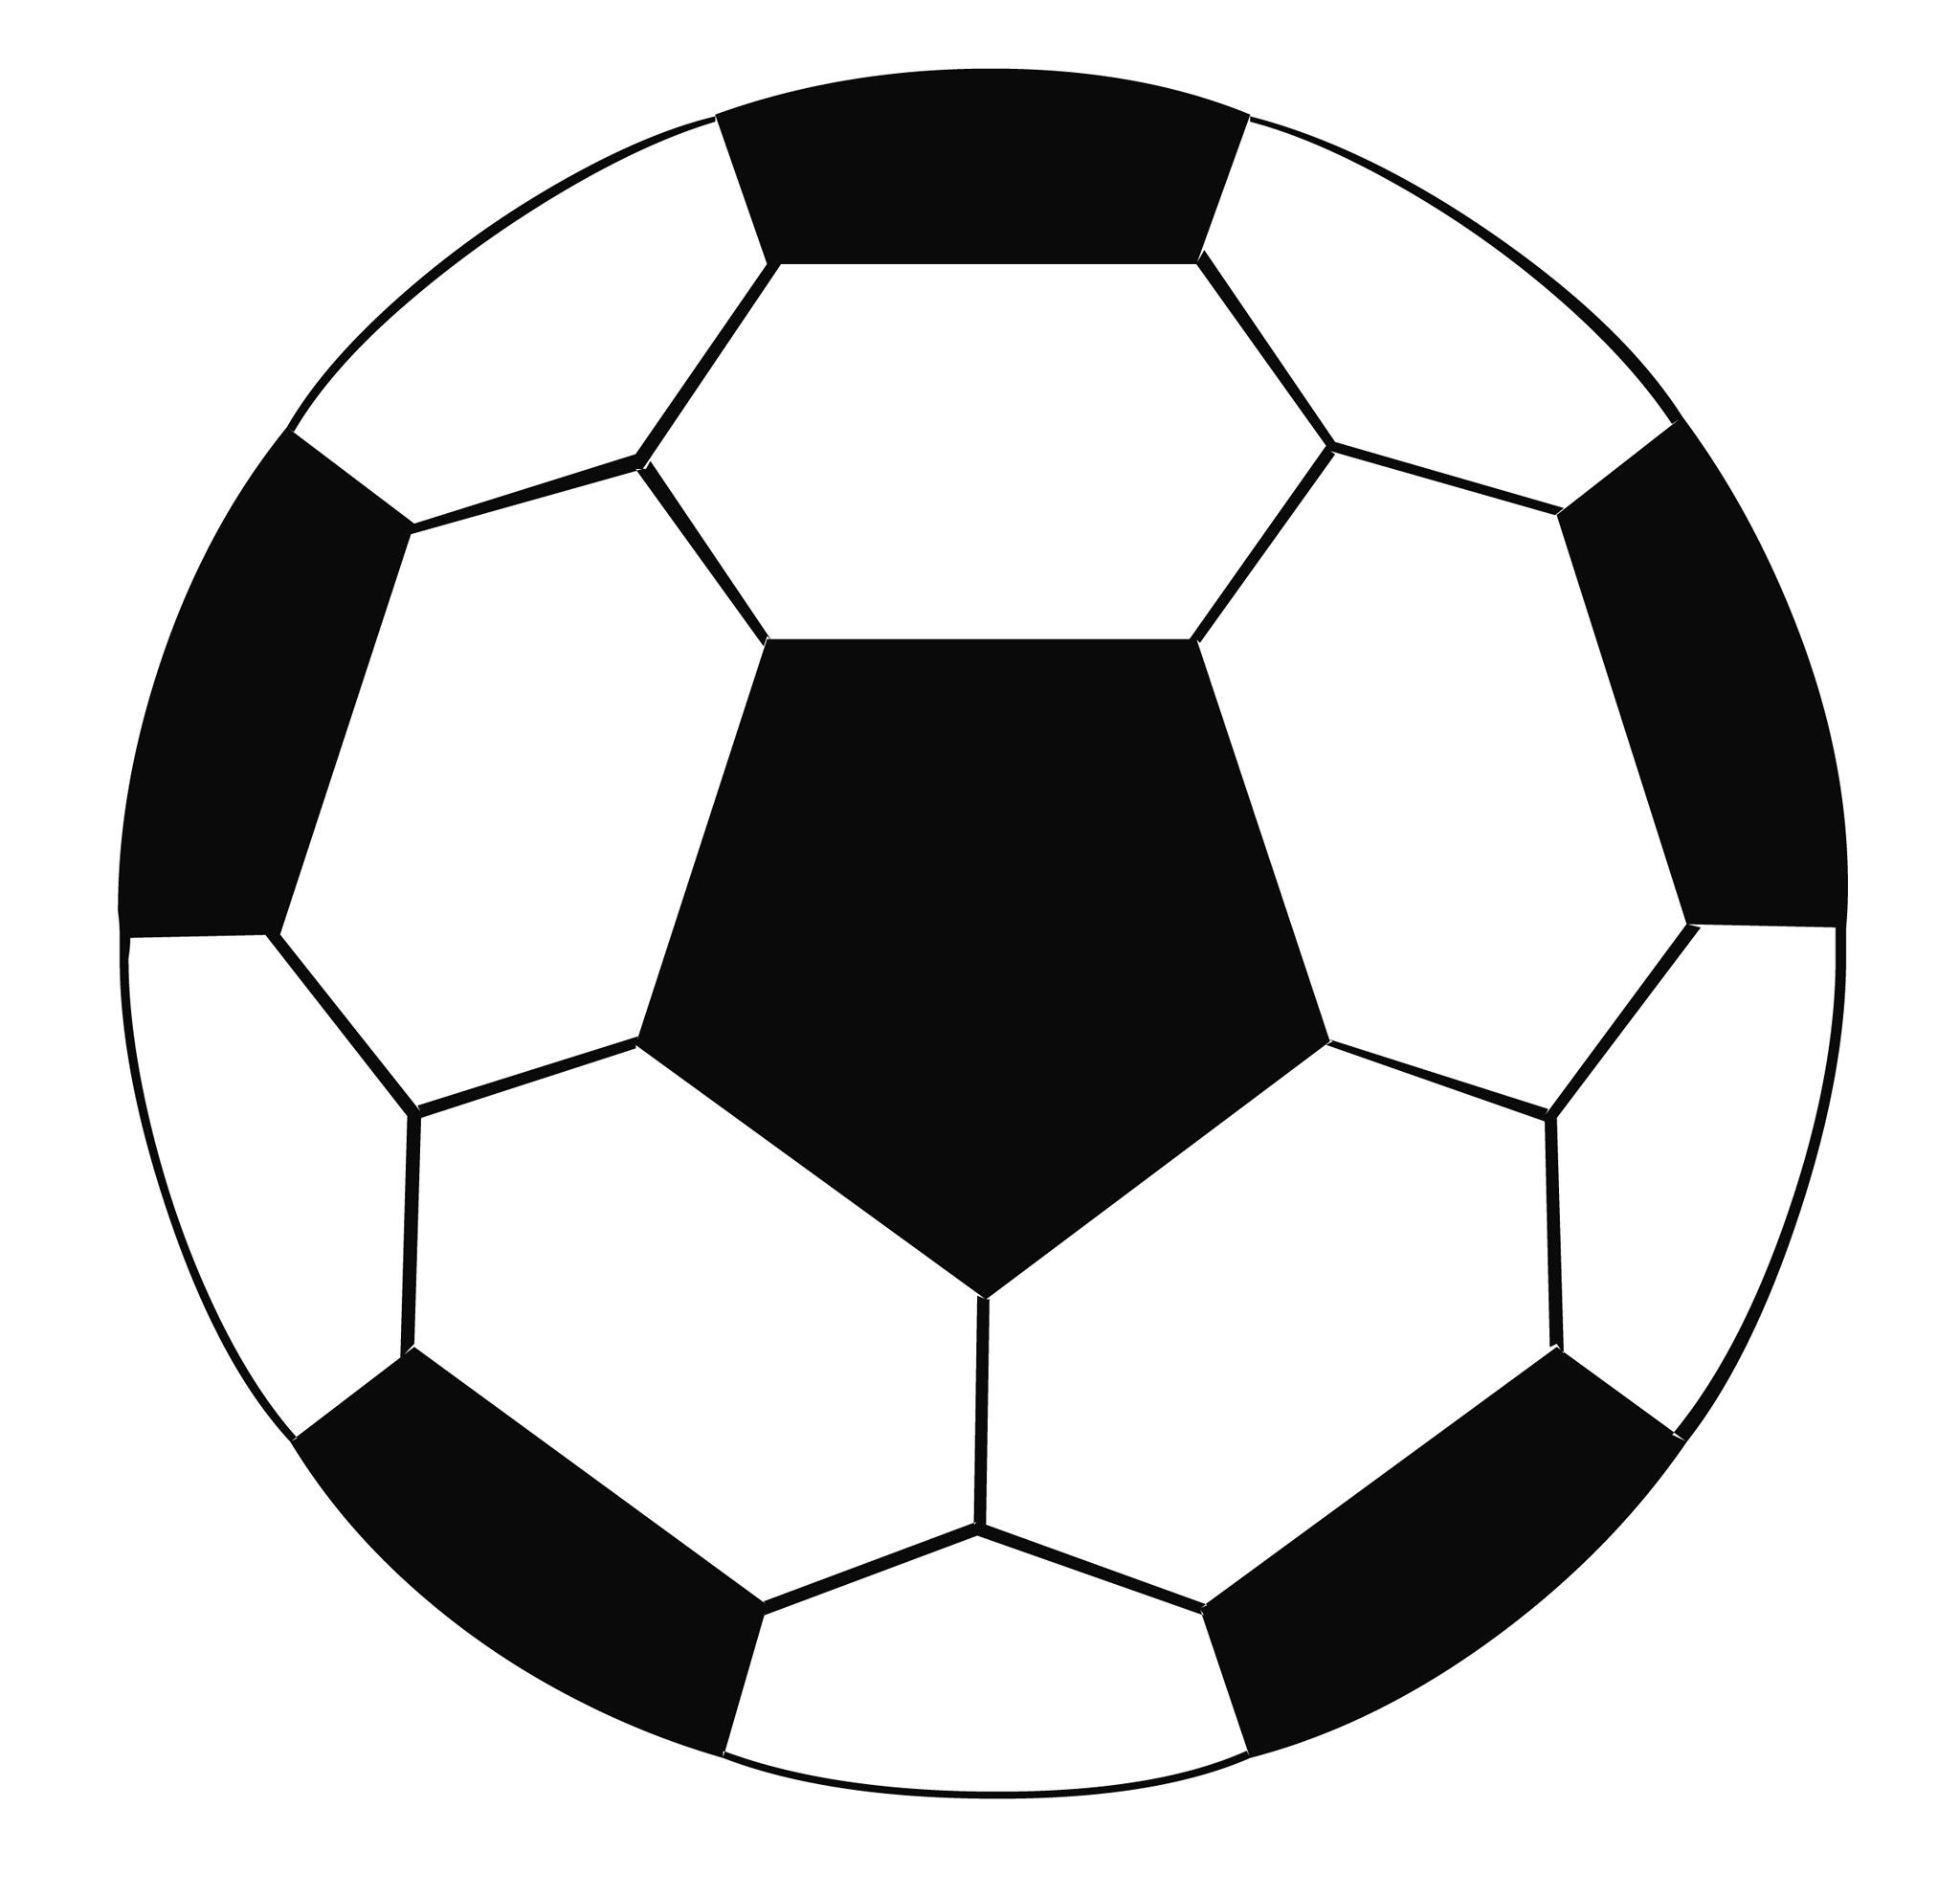 soccer ball clip art free large images pinteres rh pinterest com soccer goal post clipart